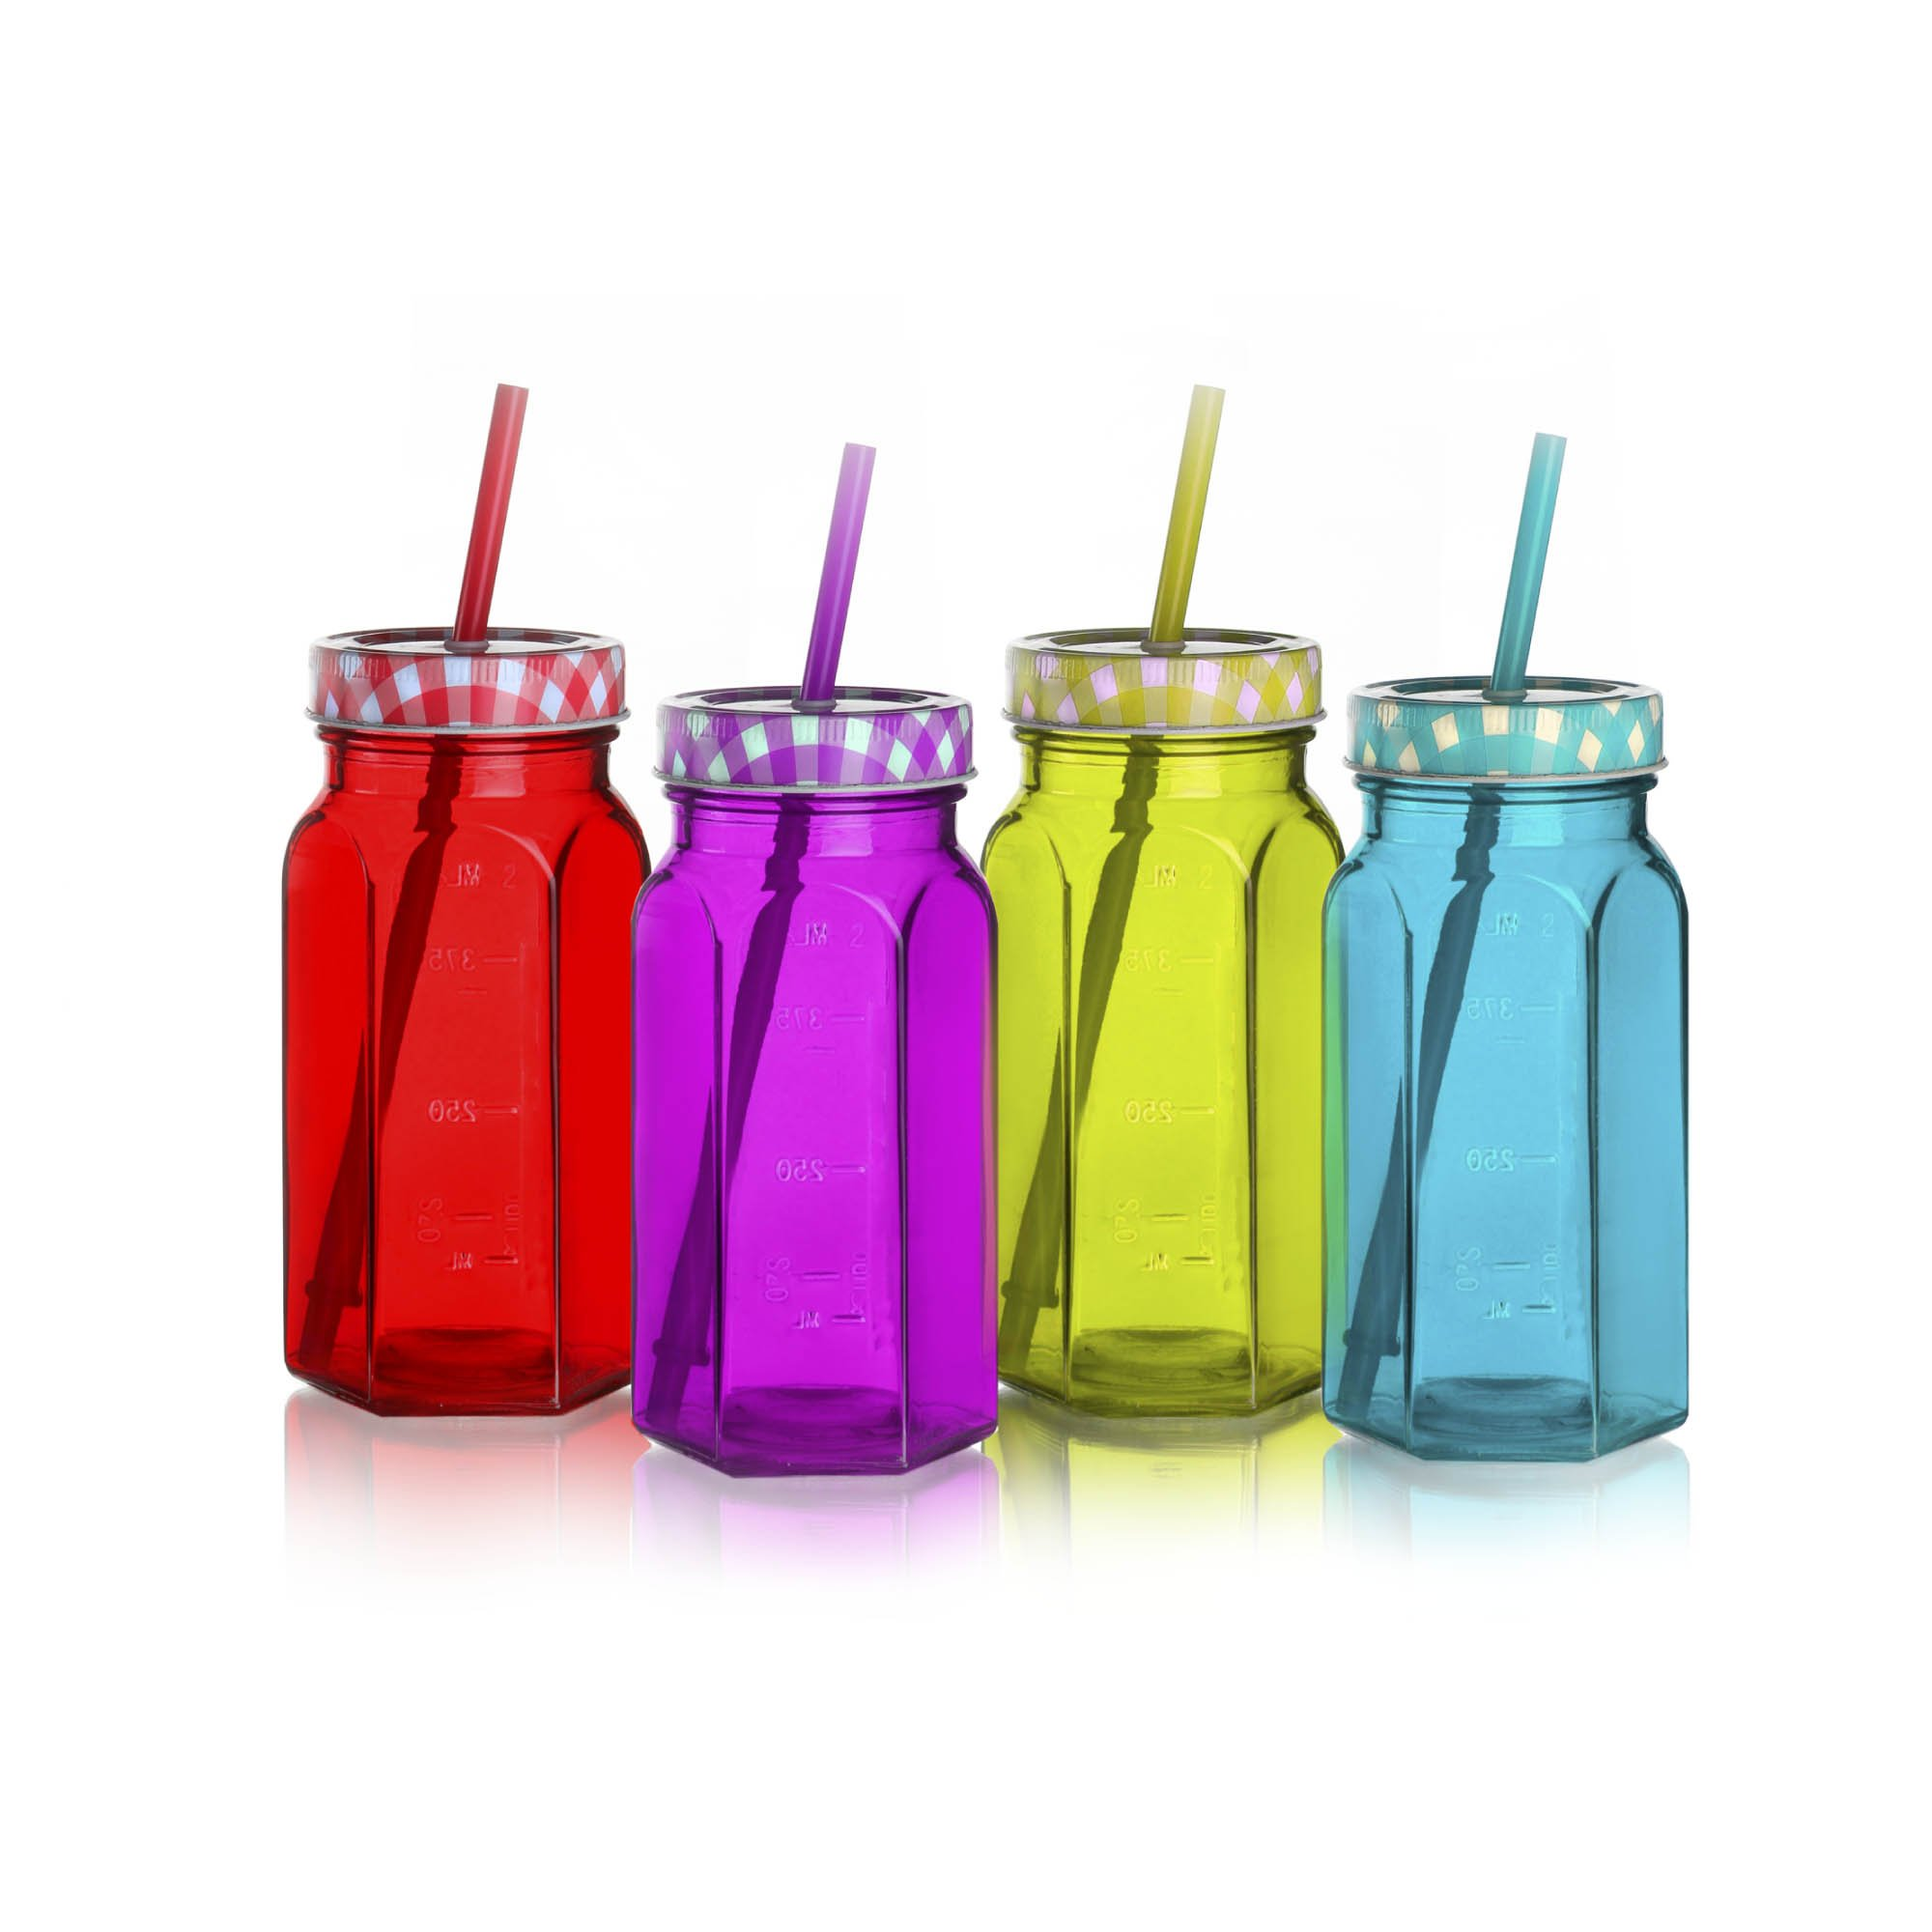 Style Setter Gingham Assorted Colored Jars with Lids & Straws (Set of 4), Multicolor